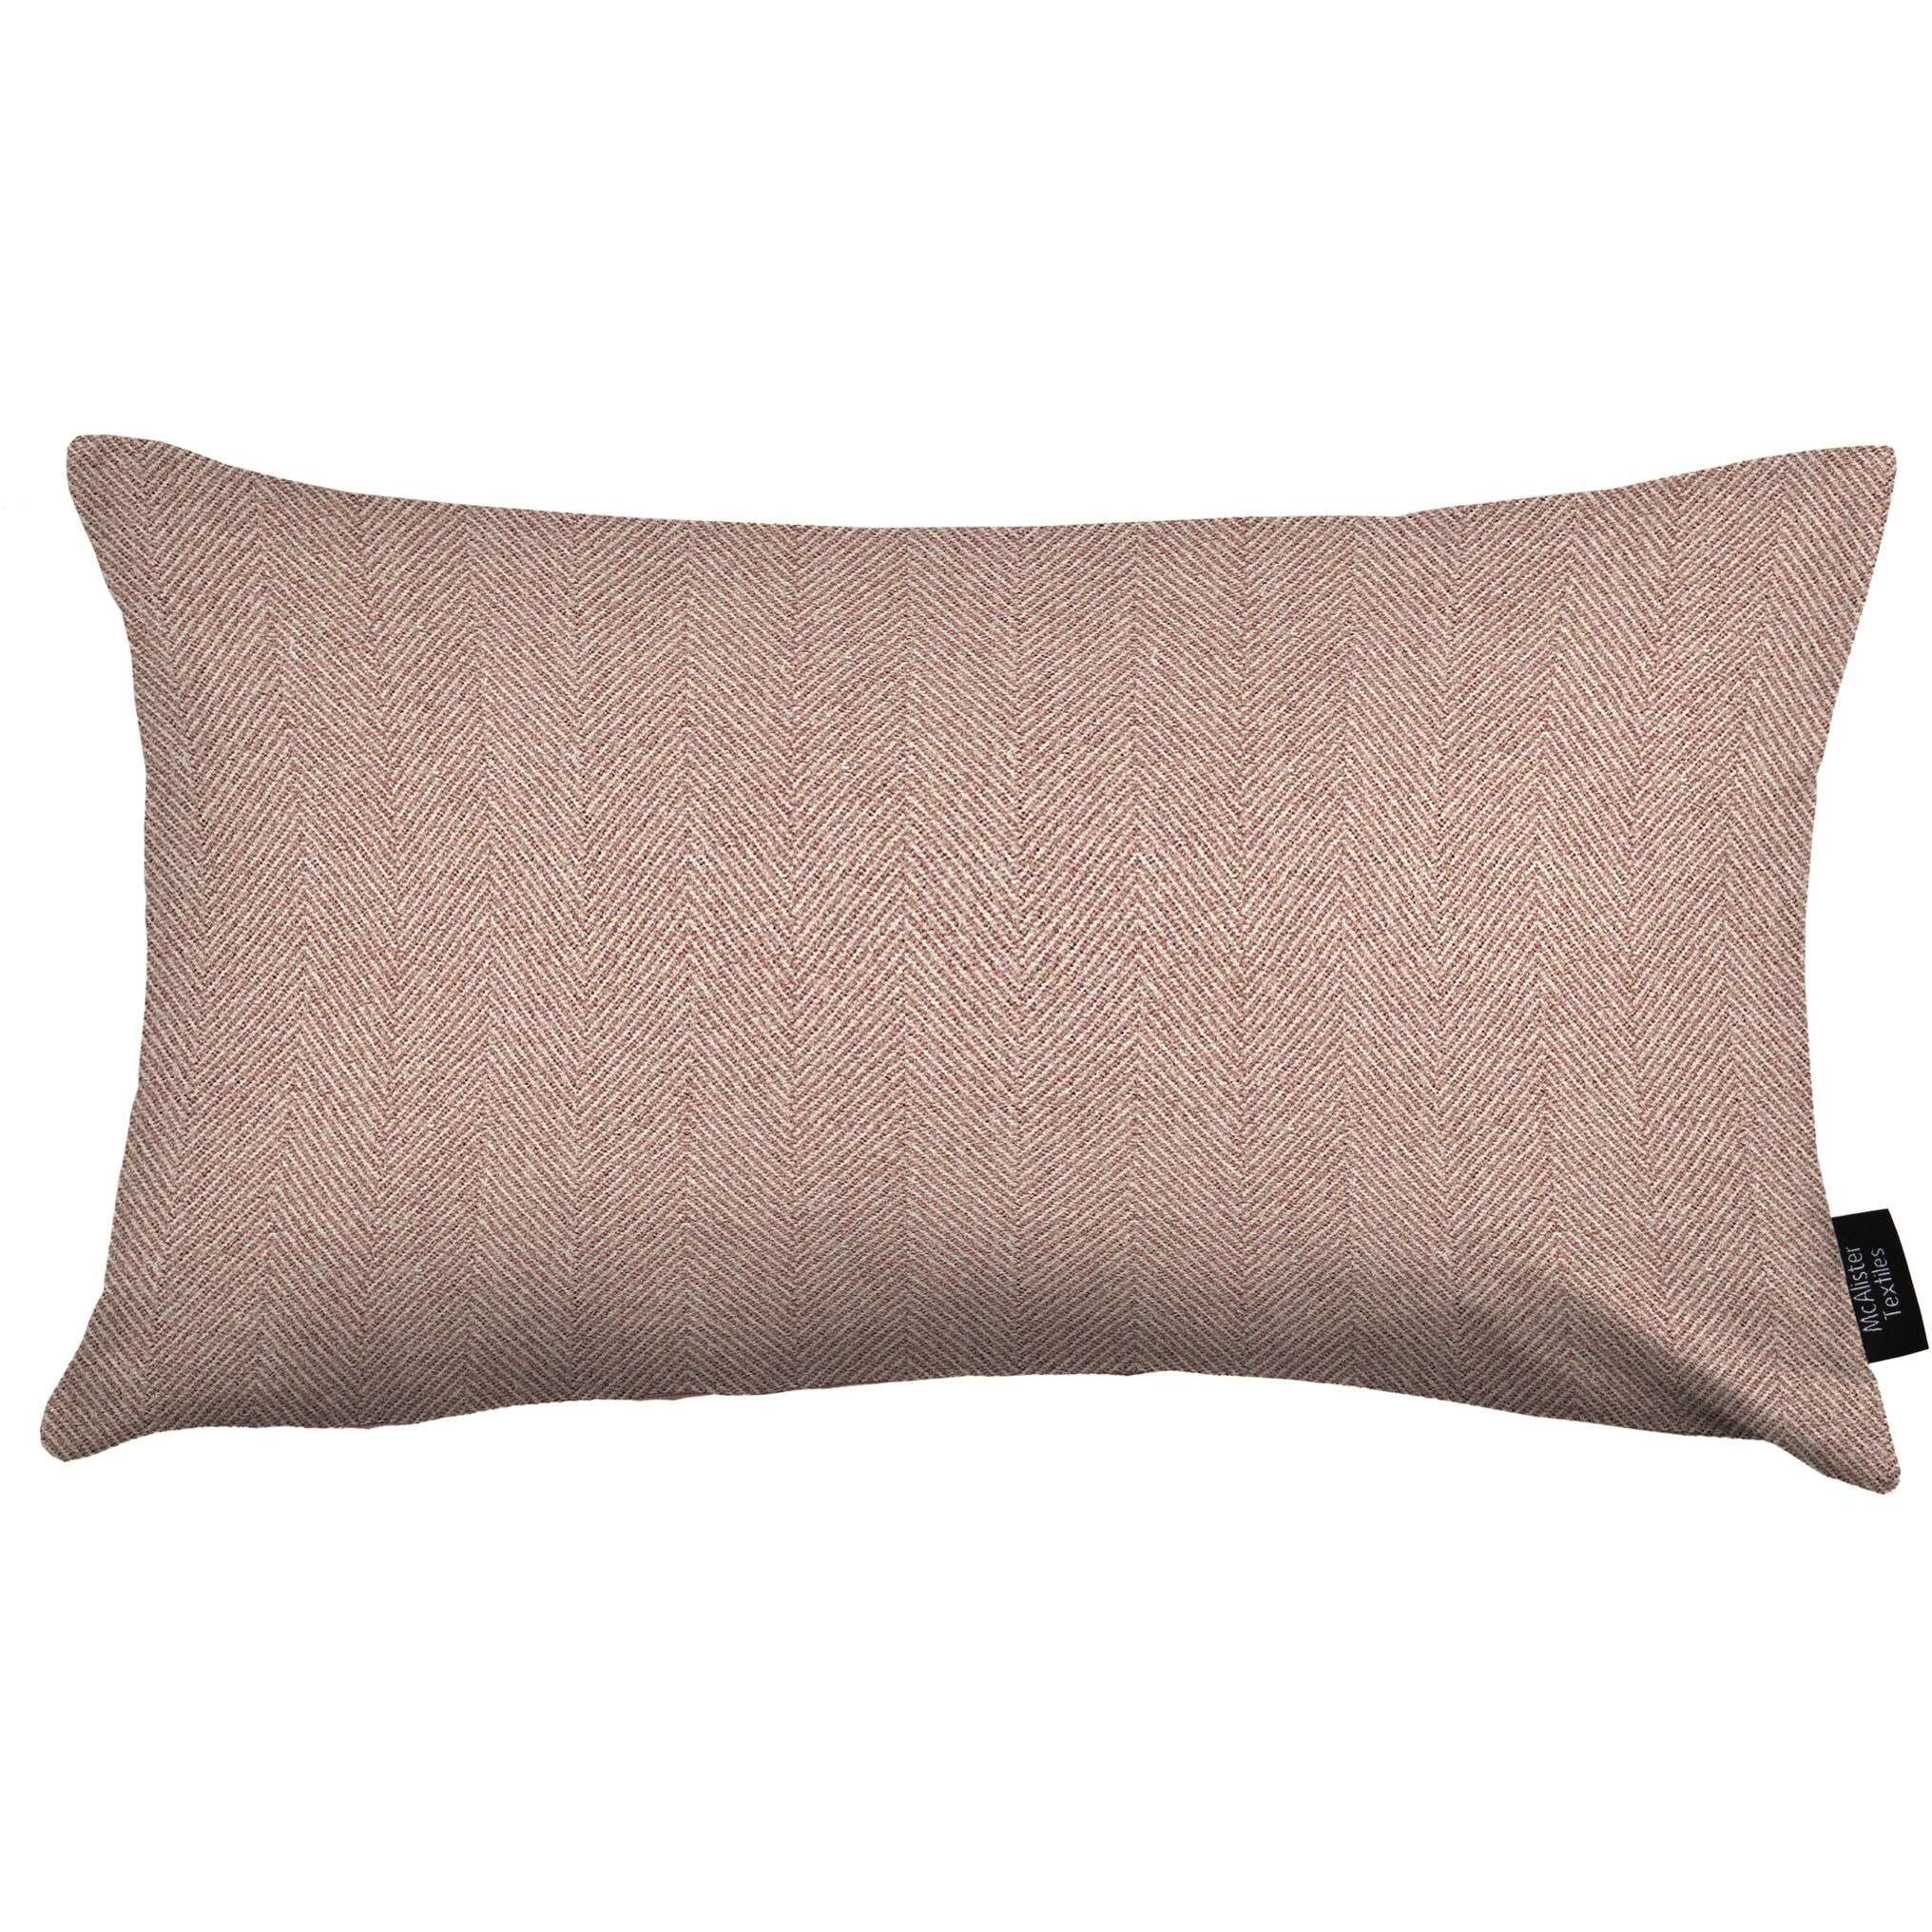 McAlister Textiles Herringbone Lilac Purple Cushion Cushions and Covers Cover Only 50cm x 30cm